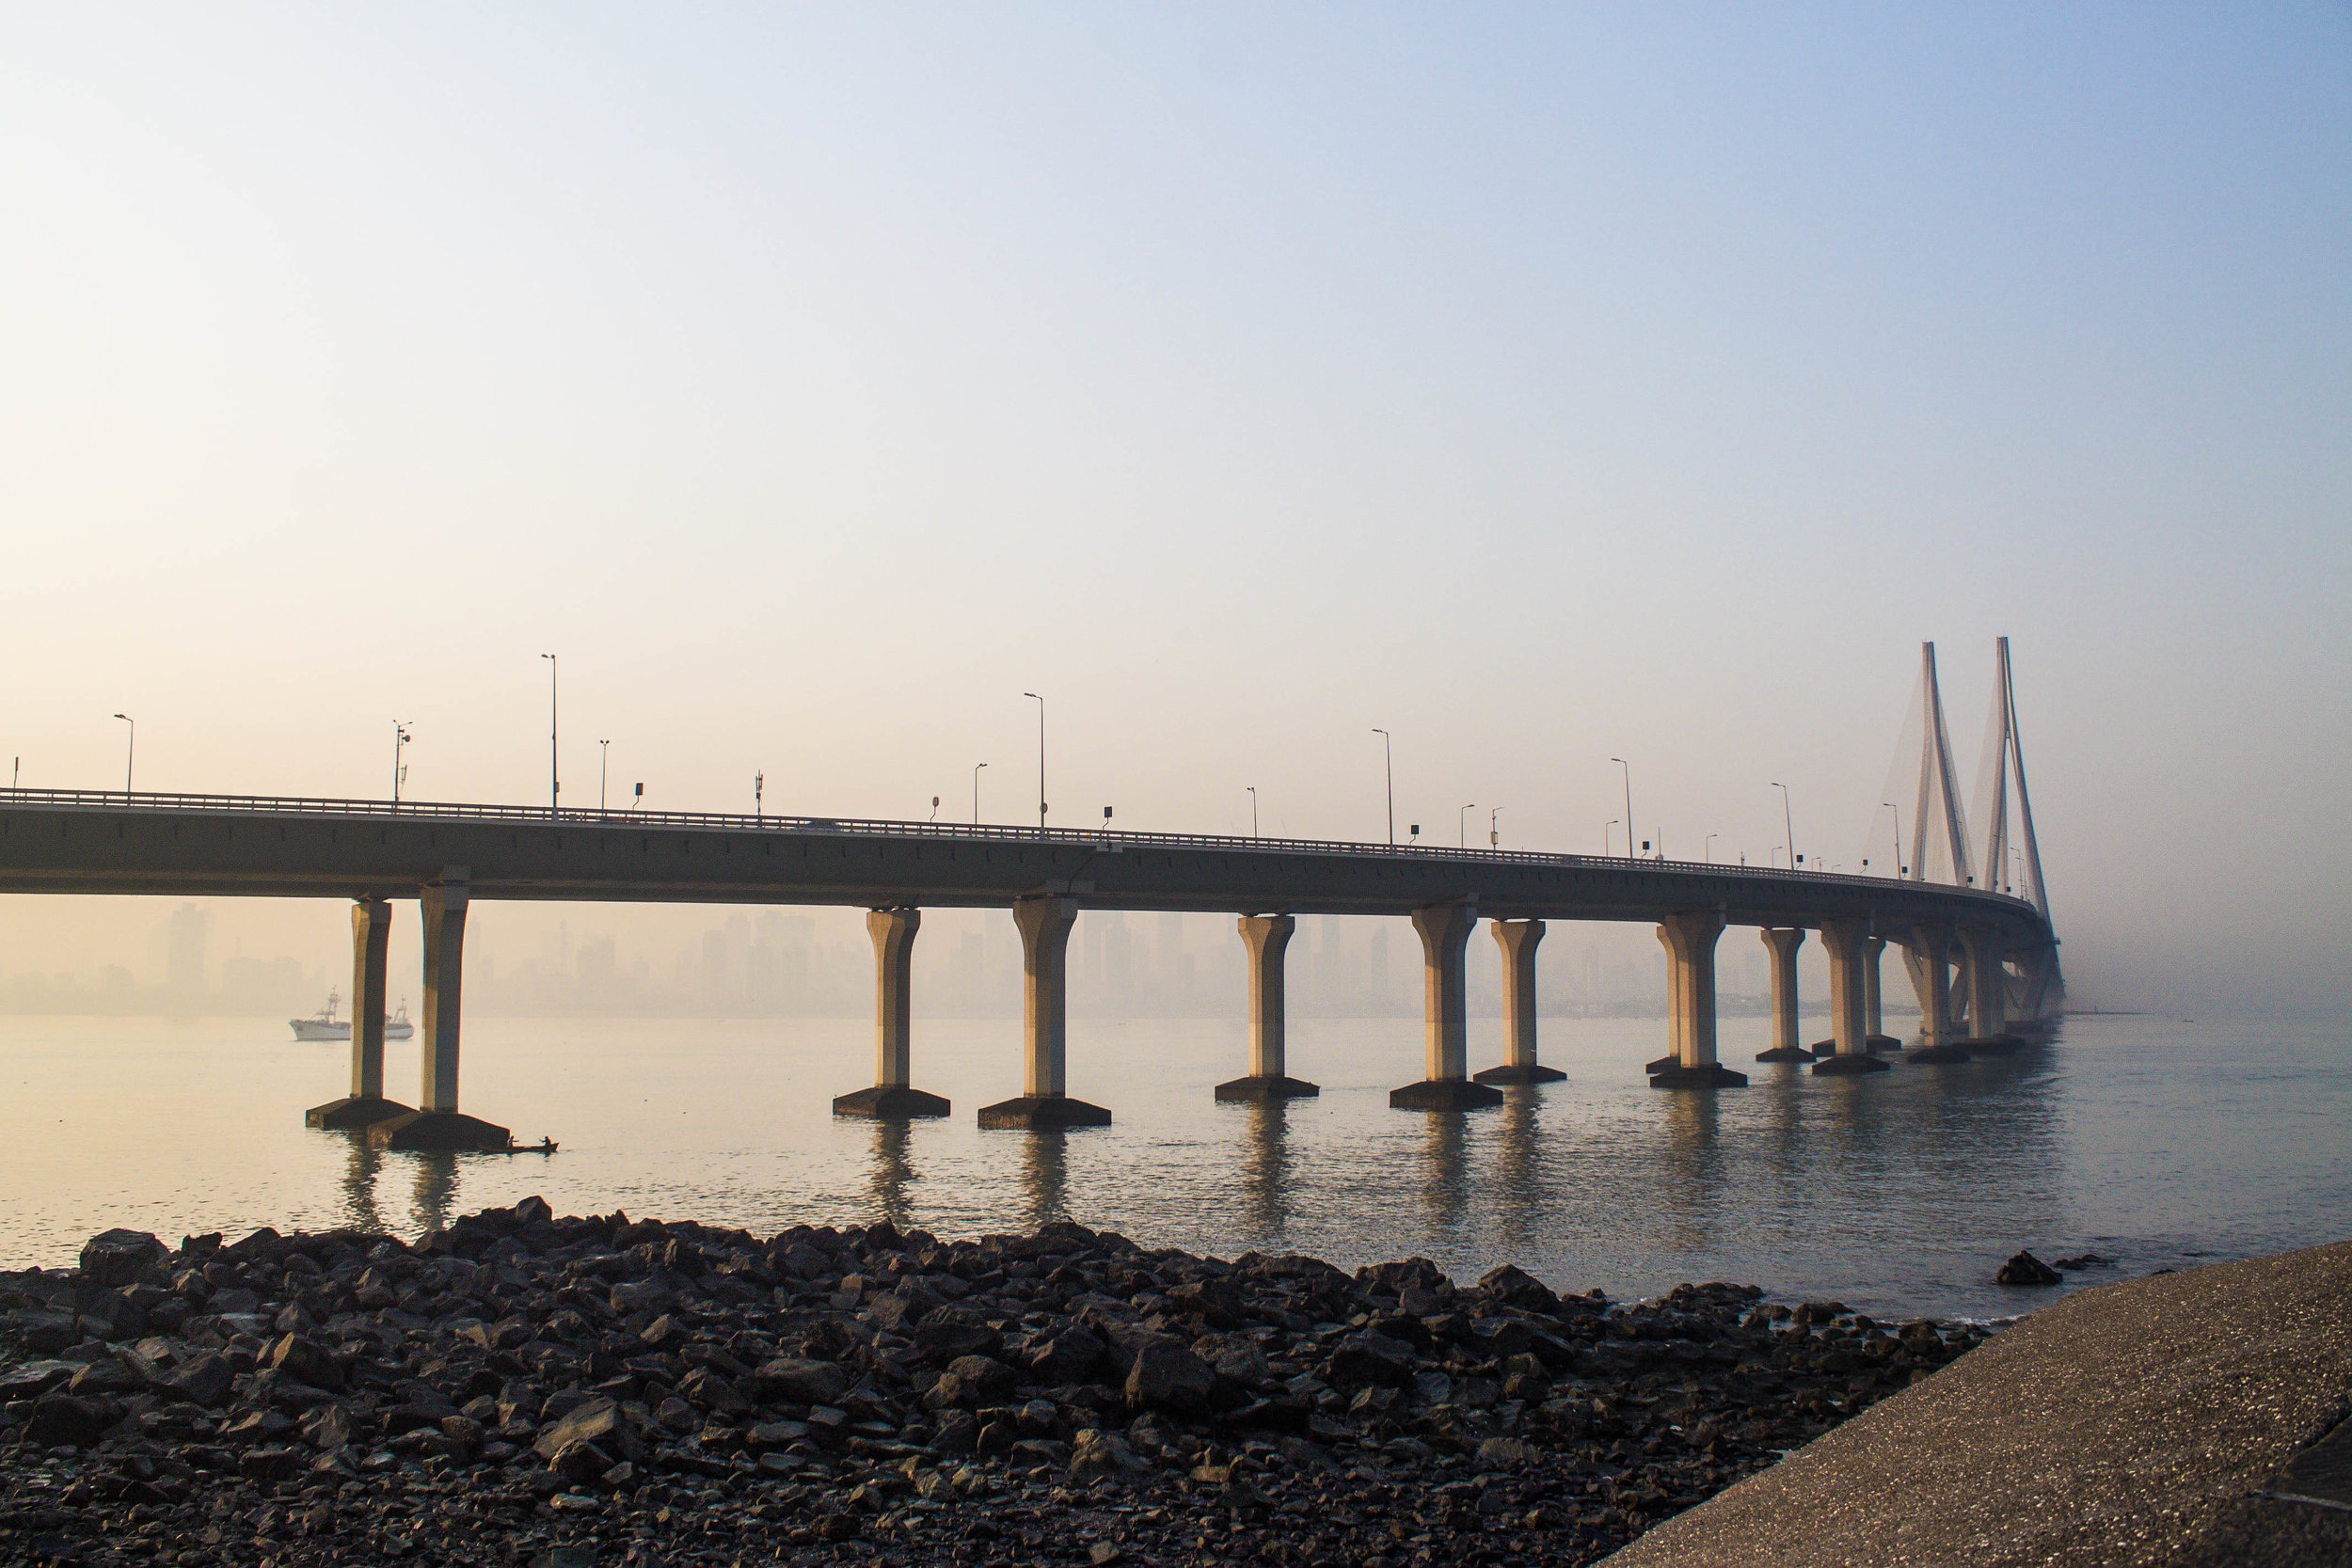 Bandra-Worli Sea Link — or as I called it: the Indian Zakim Bridge.